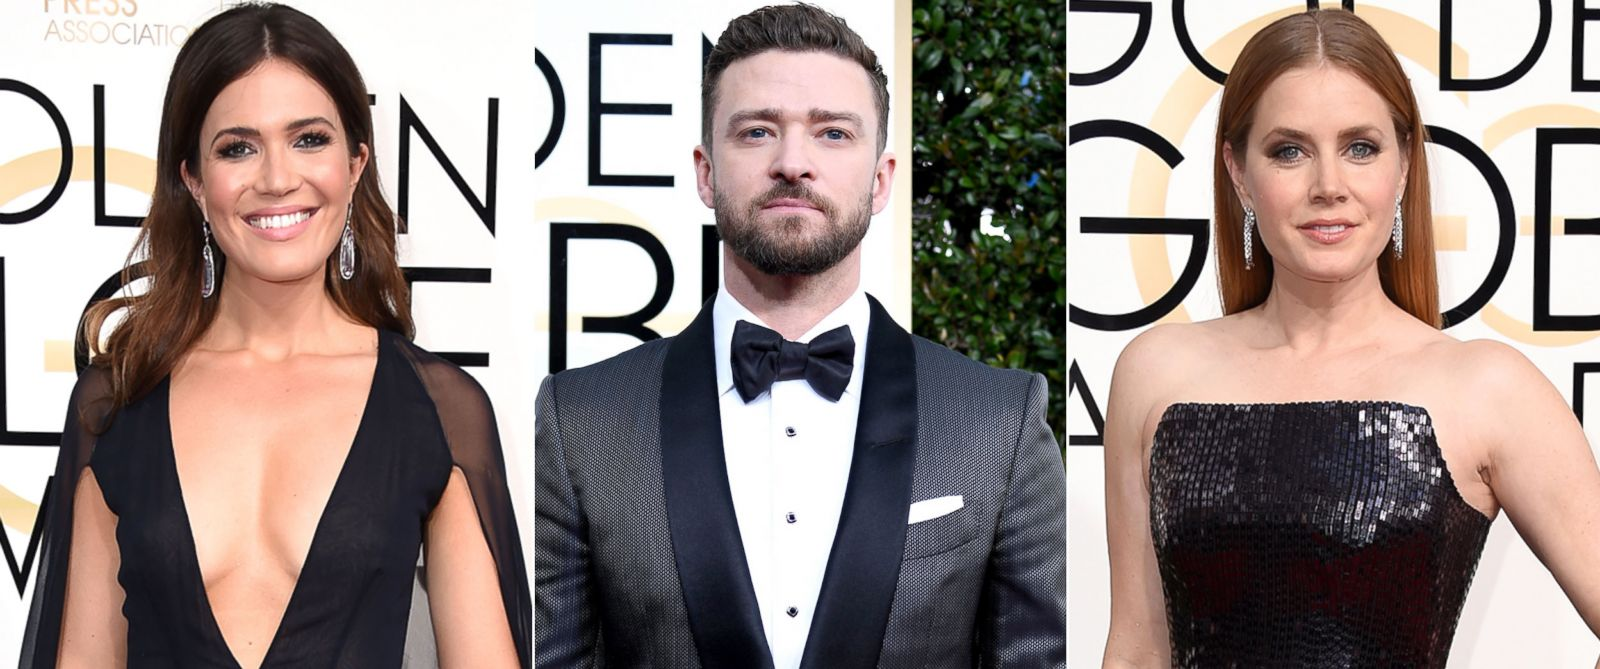 ... Justin Timberlake, and Amy Adams at the 74th Annual Golden